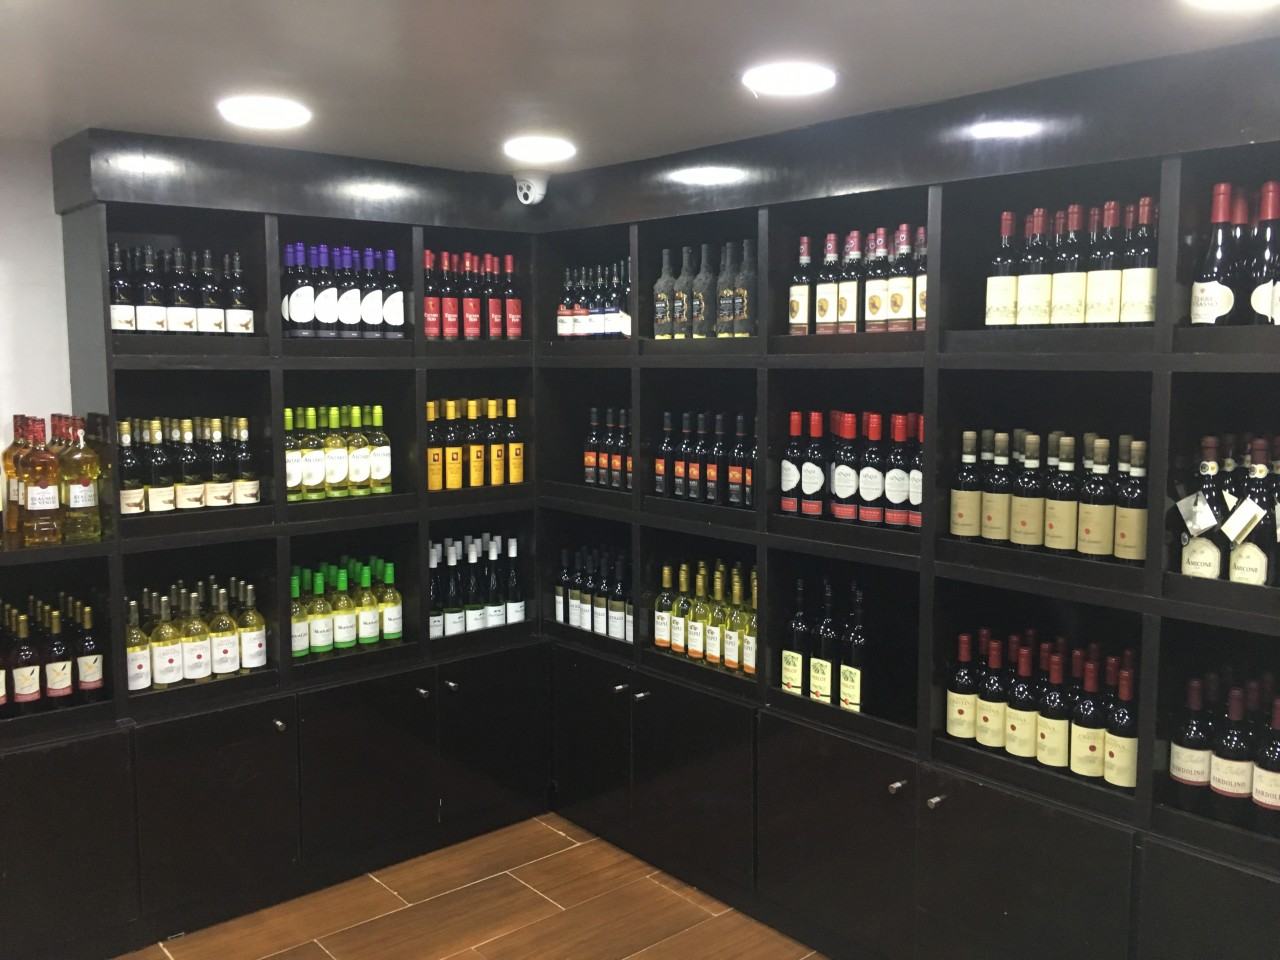 Pelssy Wines and Spirits